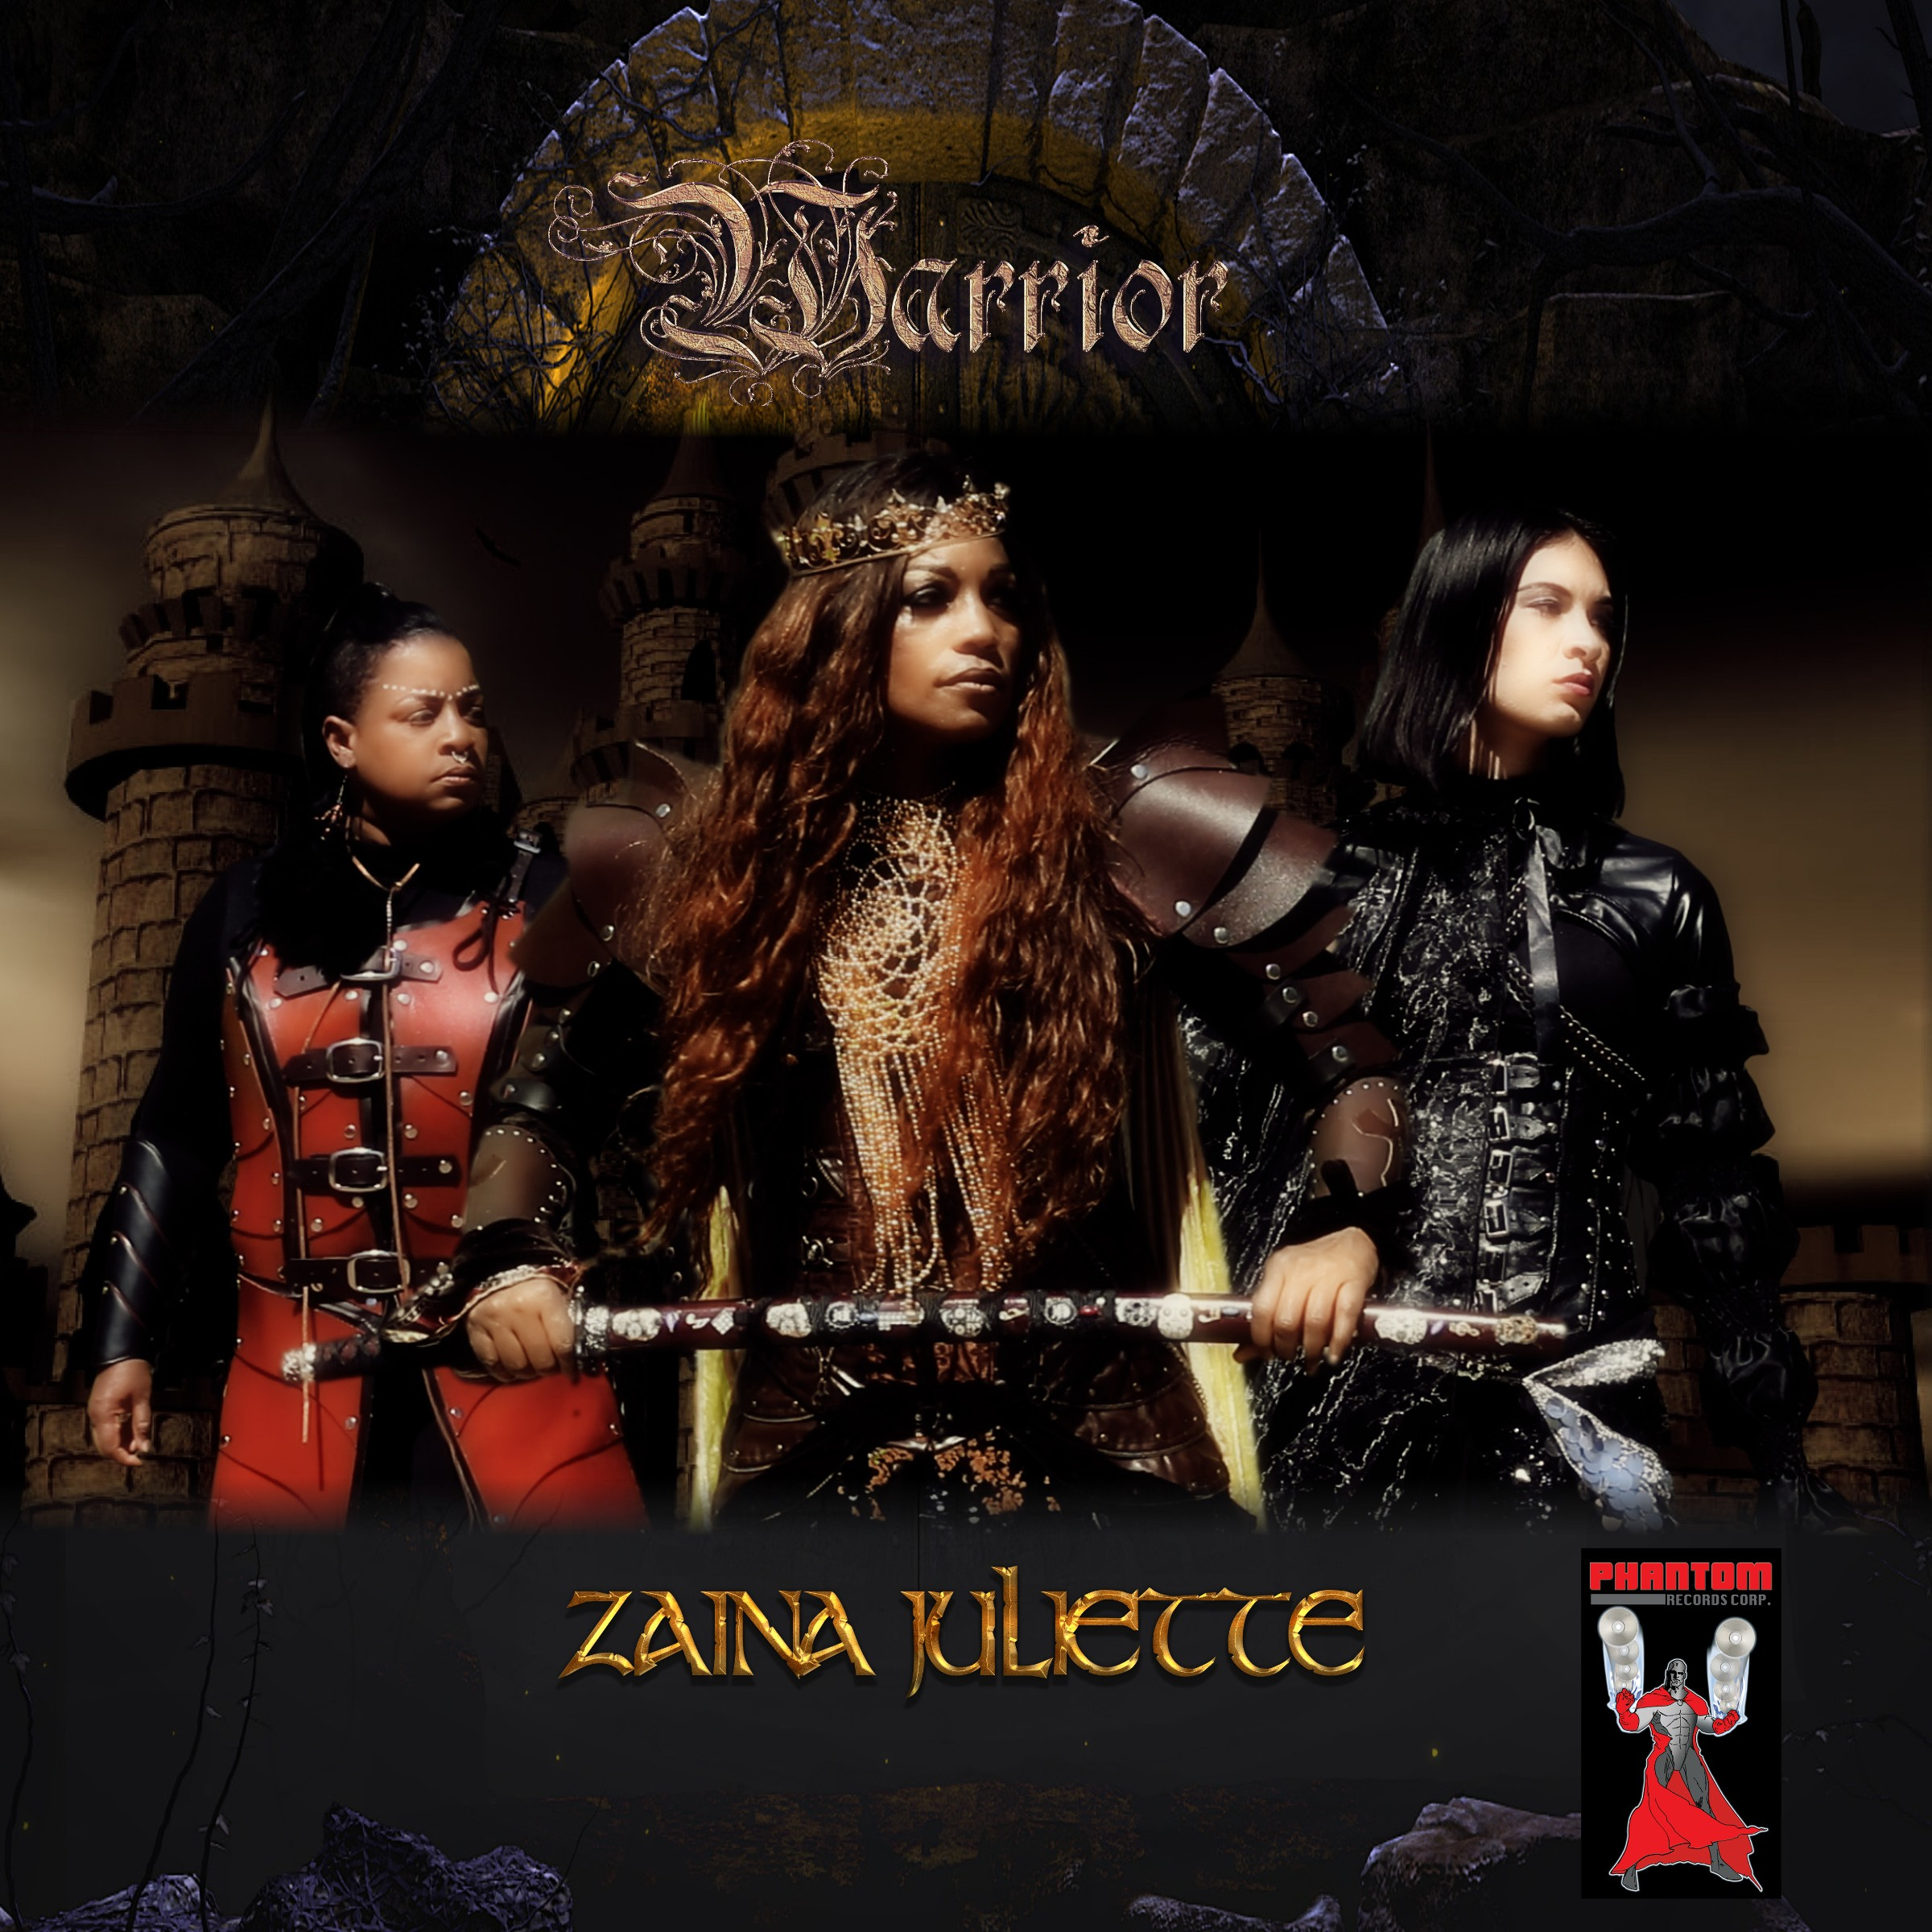 Zaina Juliette Warrior CD Cover UPDATE with name